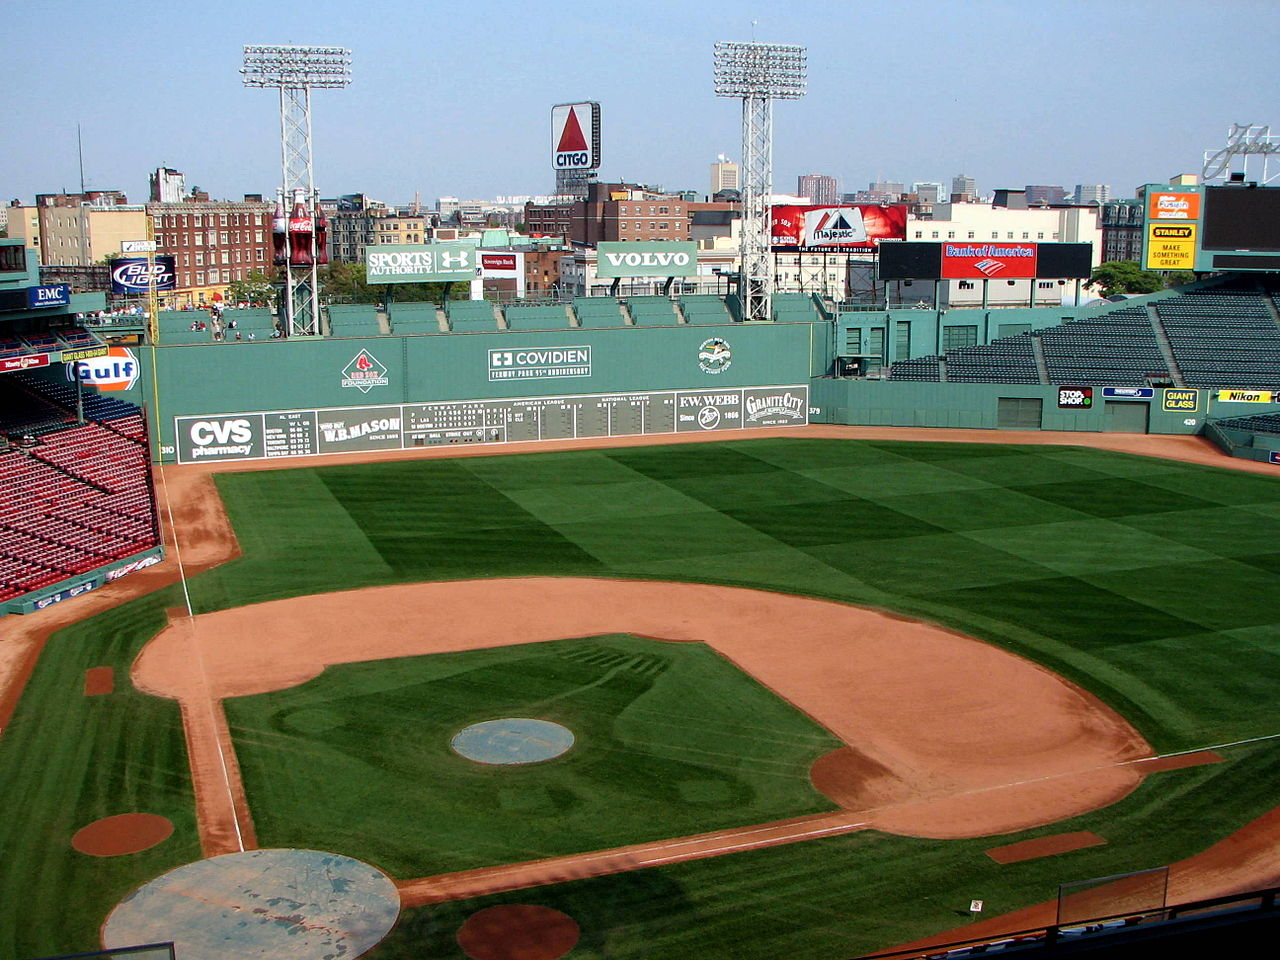 Amazing Place to See In Boston-Fenway Park